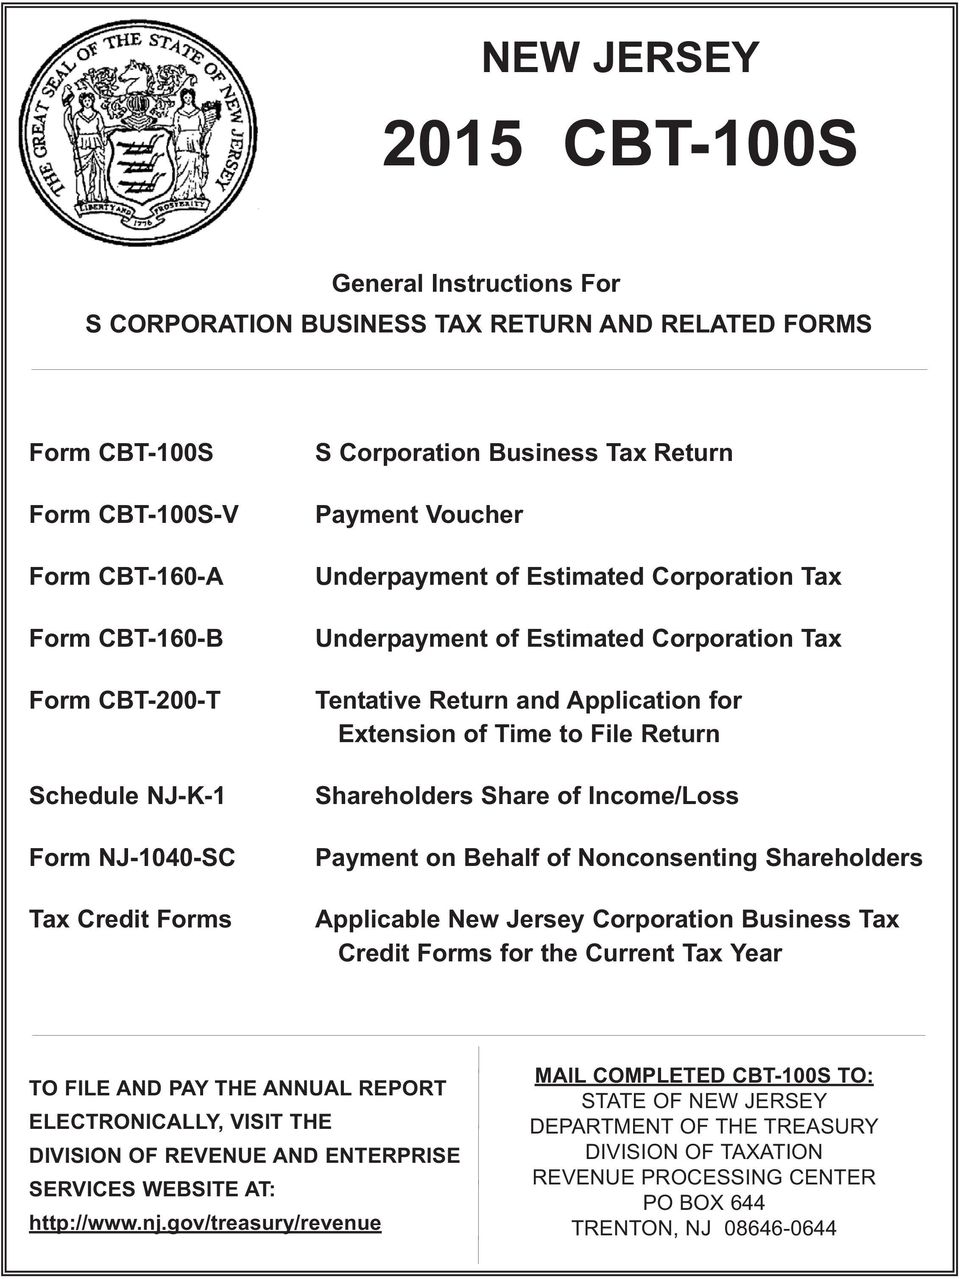 Extension of Time to File Return Shareholders Share of Income/Loss Payment on Behalf of Nonconsenting Shareholders Applicable New Jersey Corporation Business Tax Credit Forms for the Current Tax Year